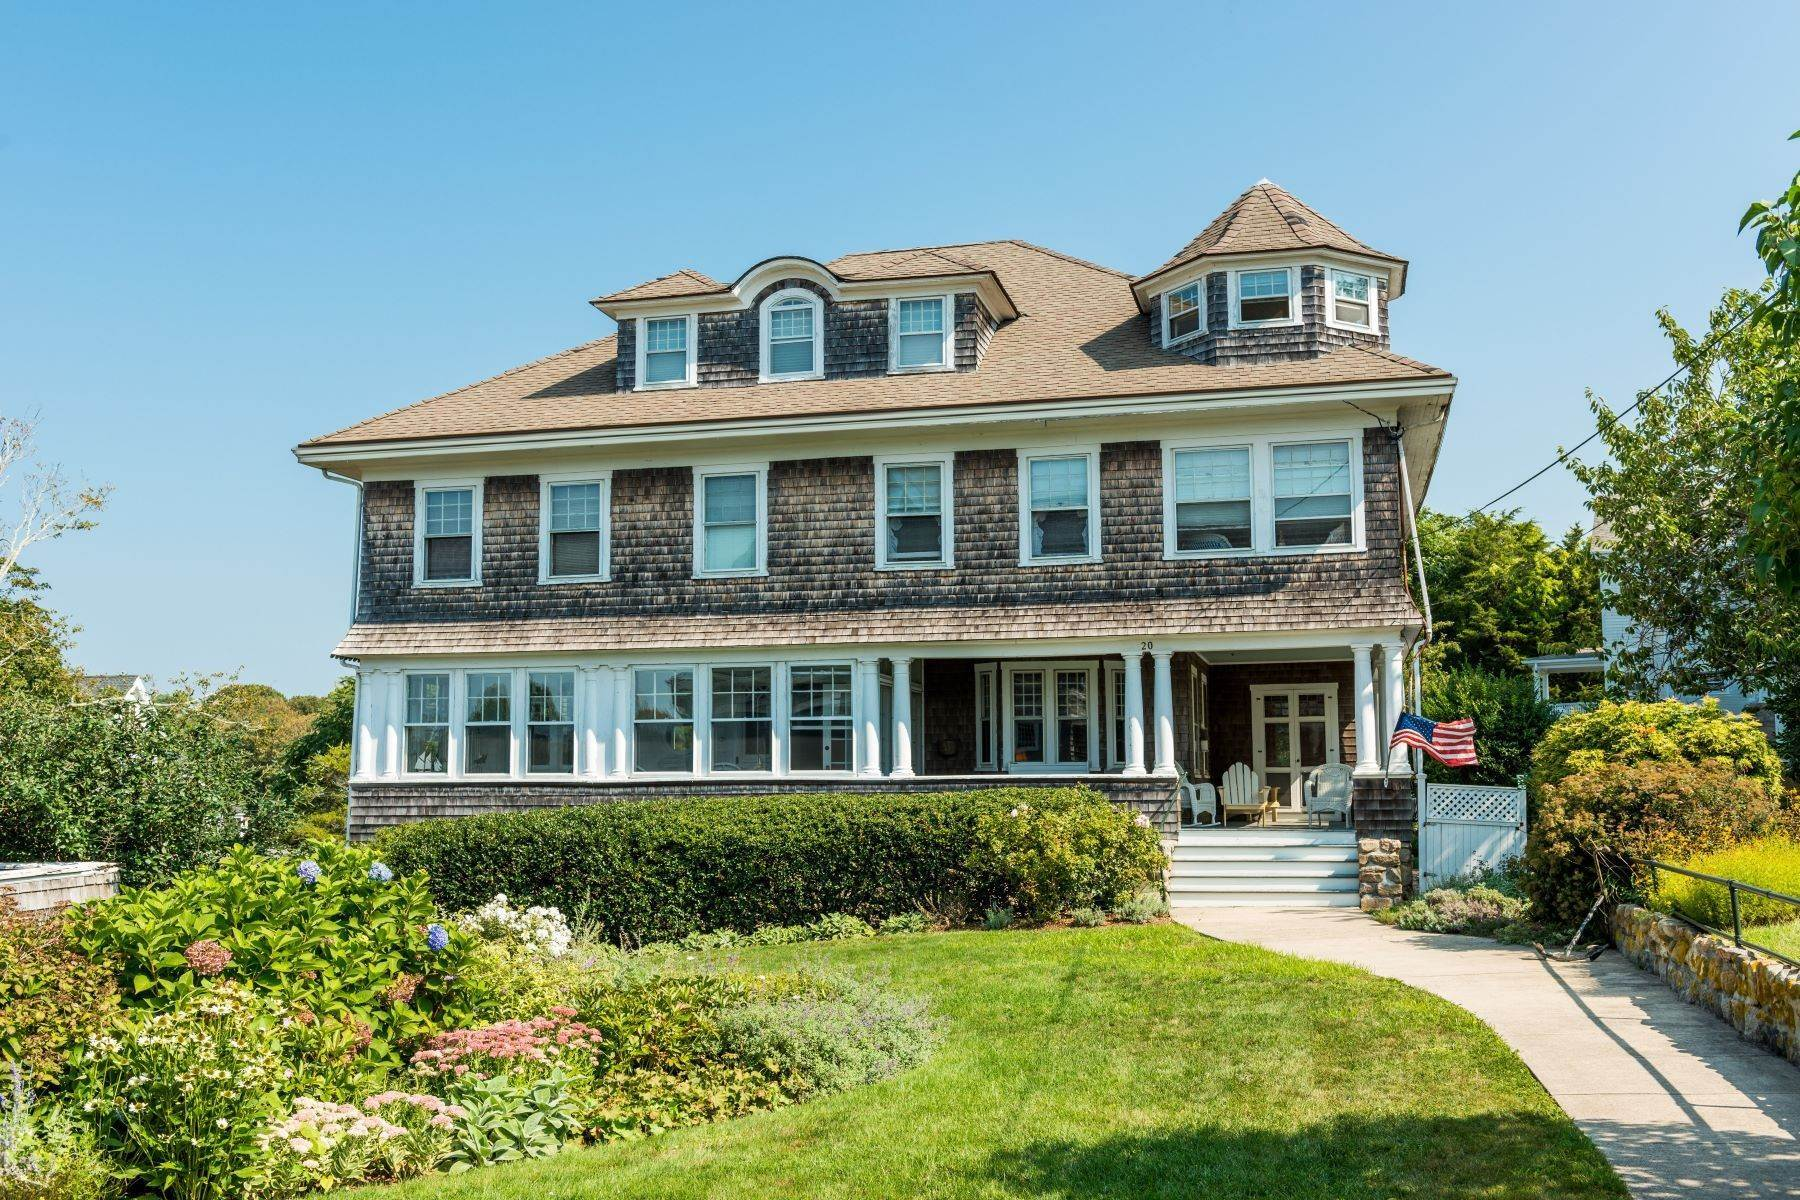 Single Family Homes for Sale at 20 Plimpton Road, Westerly, RI 20 Plimpton Road Westerly, Rhode Island 02891 United States